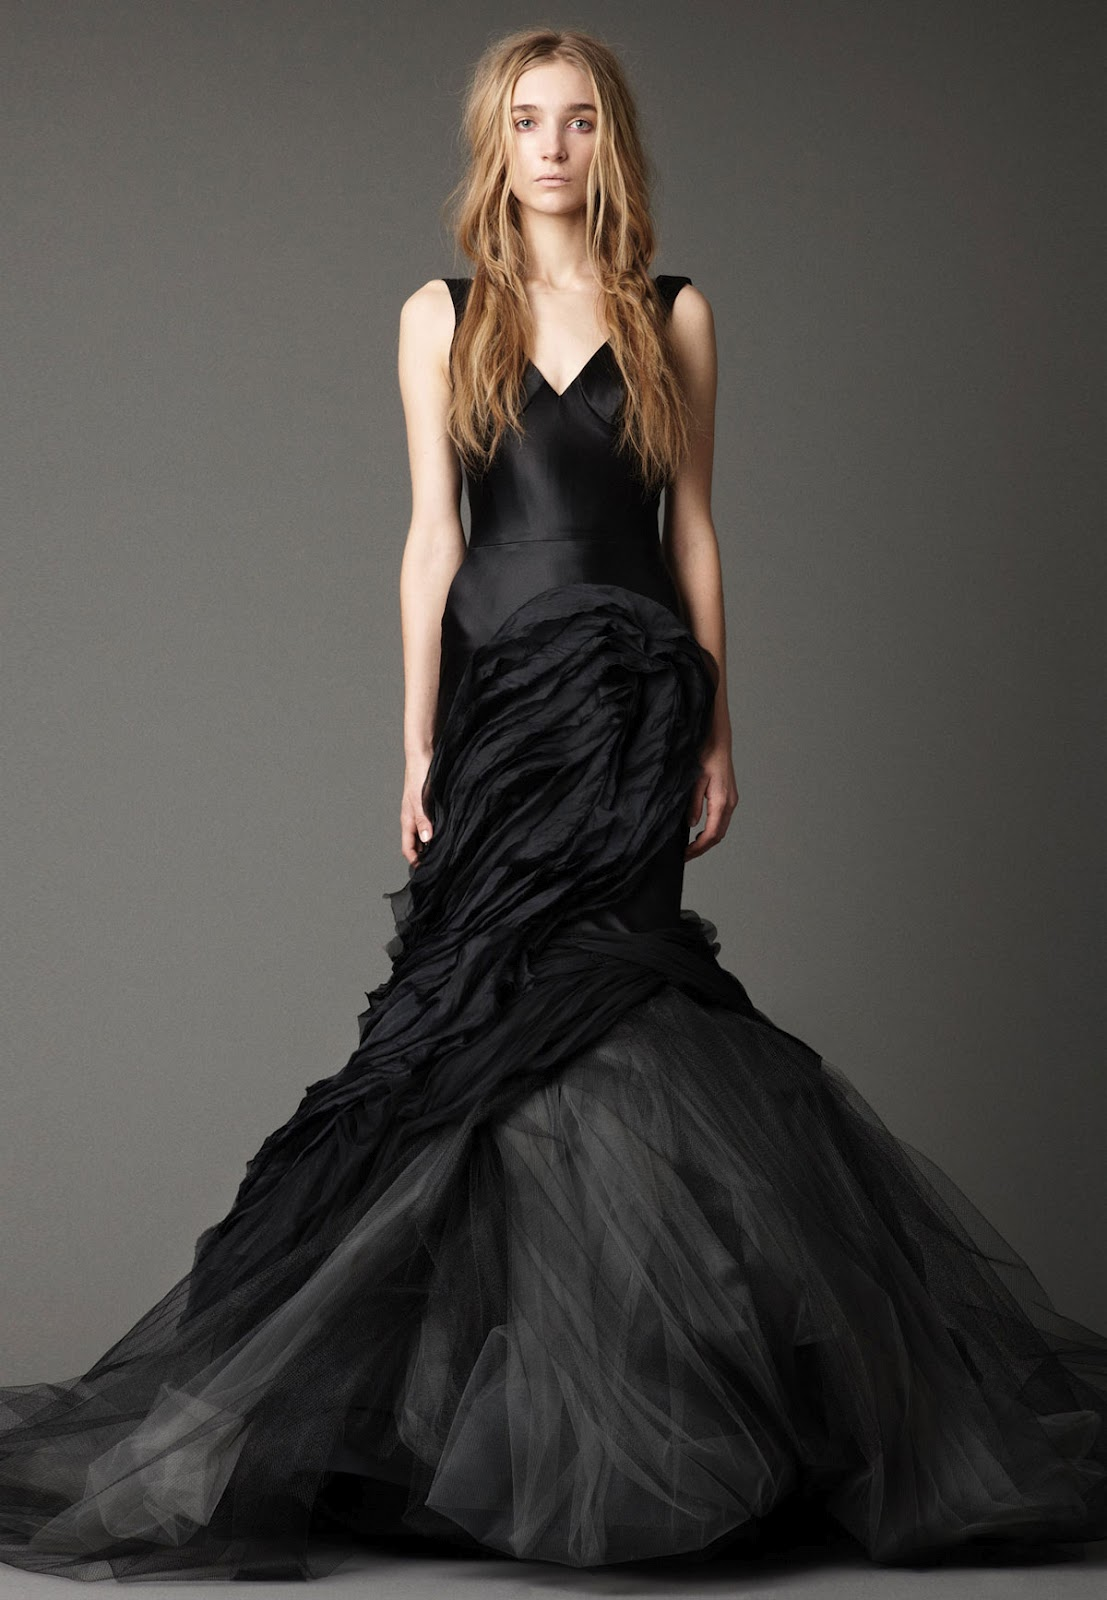 Cjnt wedding inspirations vera wang fall 2012 bridal gown for Images of black wedding dresses